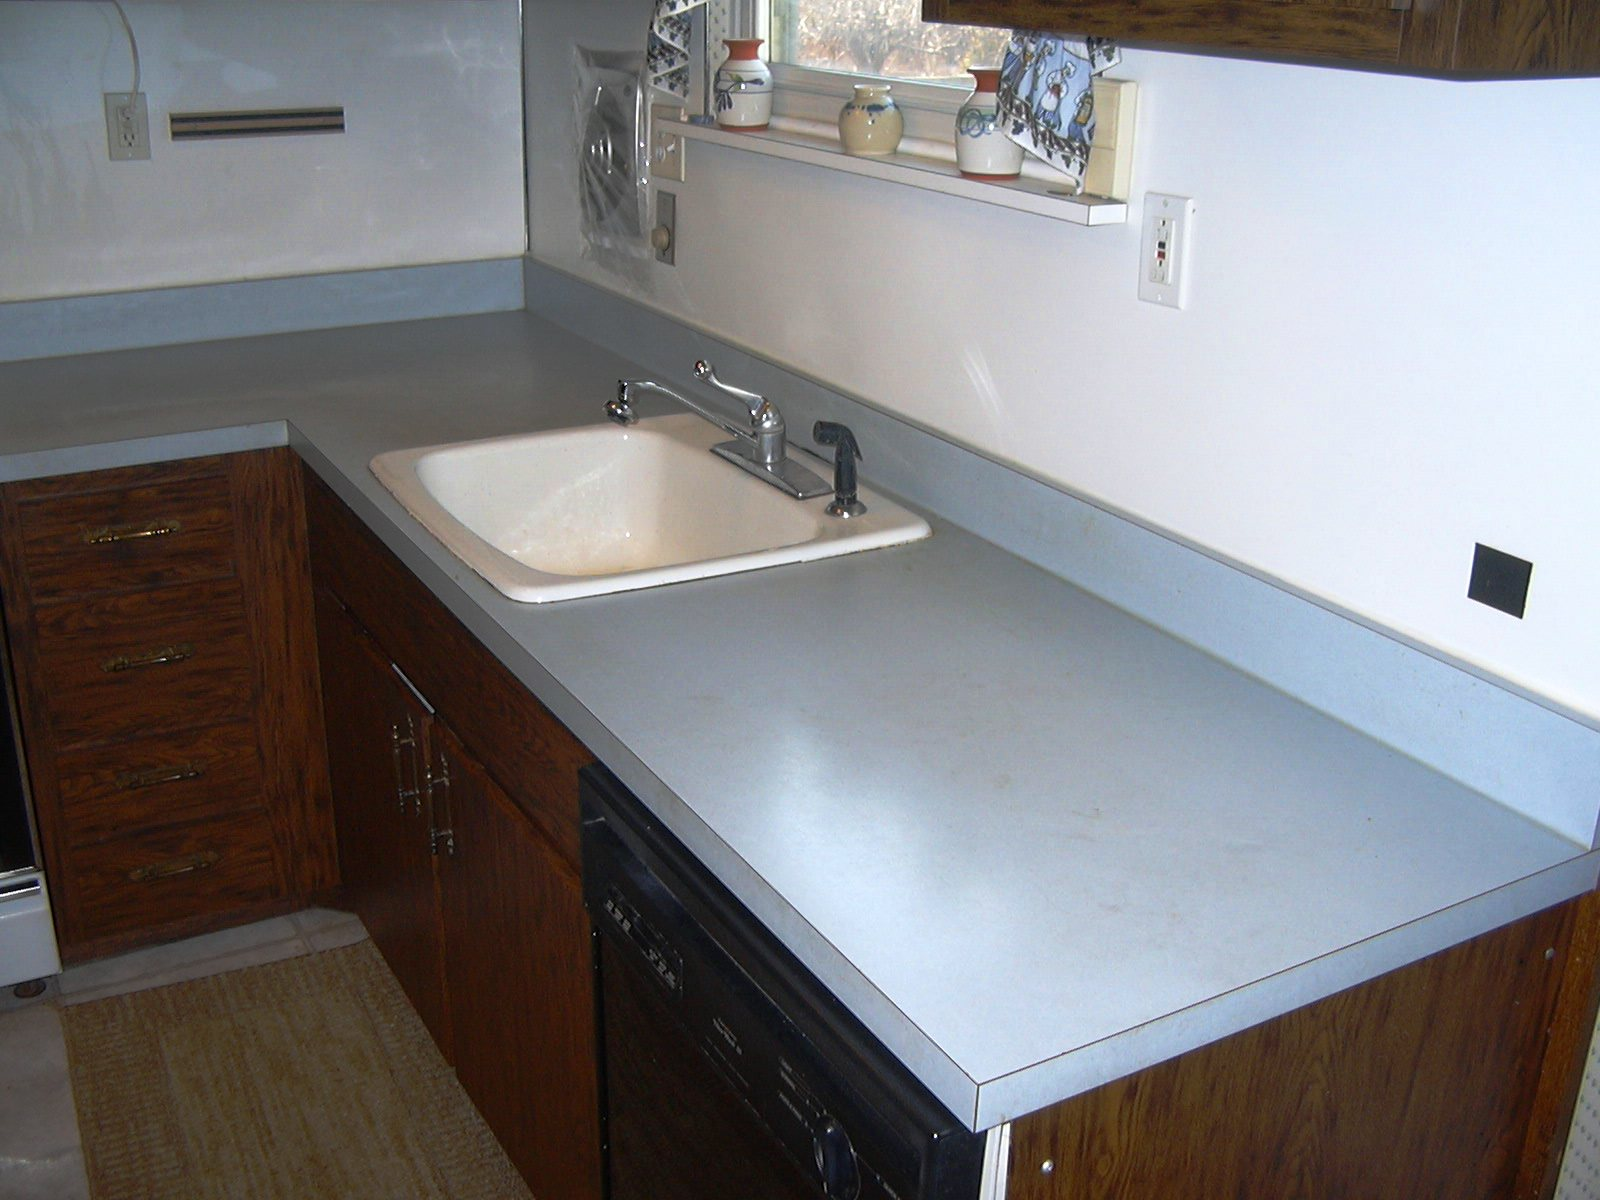 Our Countertop Was In Great Shape Structurally, But Had Many Superficial  Scratches And Stains. The Color Also Did Not Go With The Laminate Floor We  Put In A ...